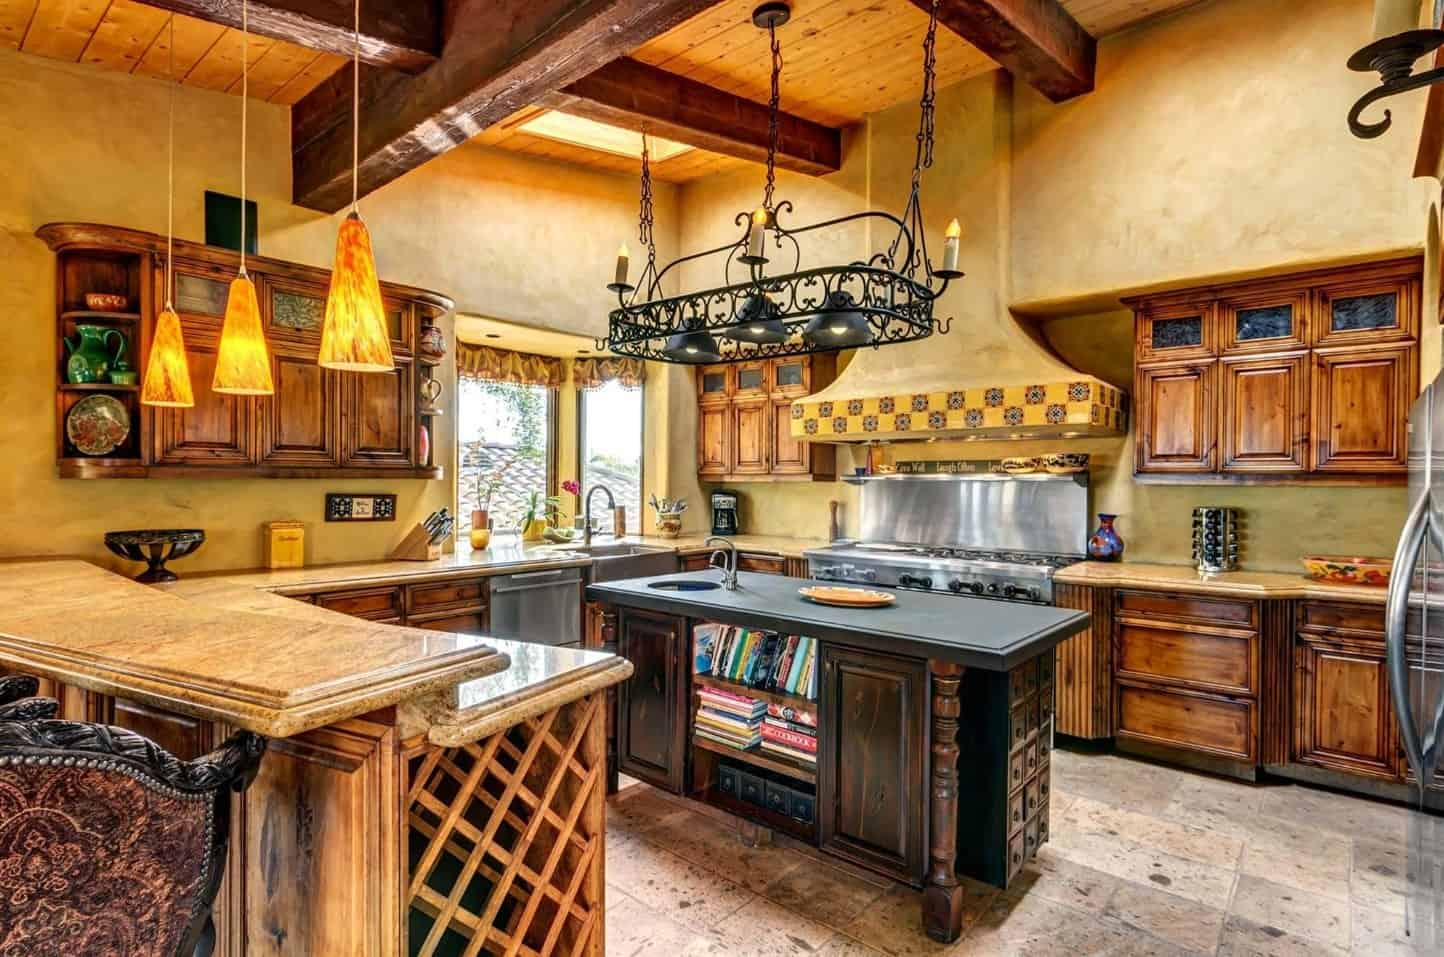 From the wooden ceiling hangs an intricate dark wrought iron structure that supports pendant lights. This matched with the matte dark countertop of the wooden kitchen island surrounded by a large U-shaped wooden peninsula.